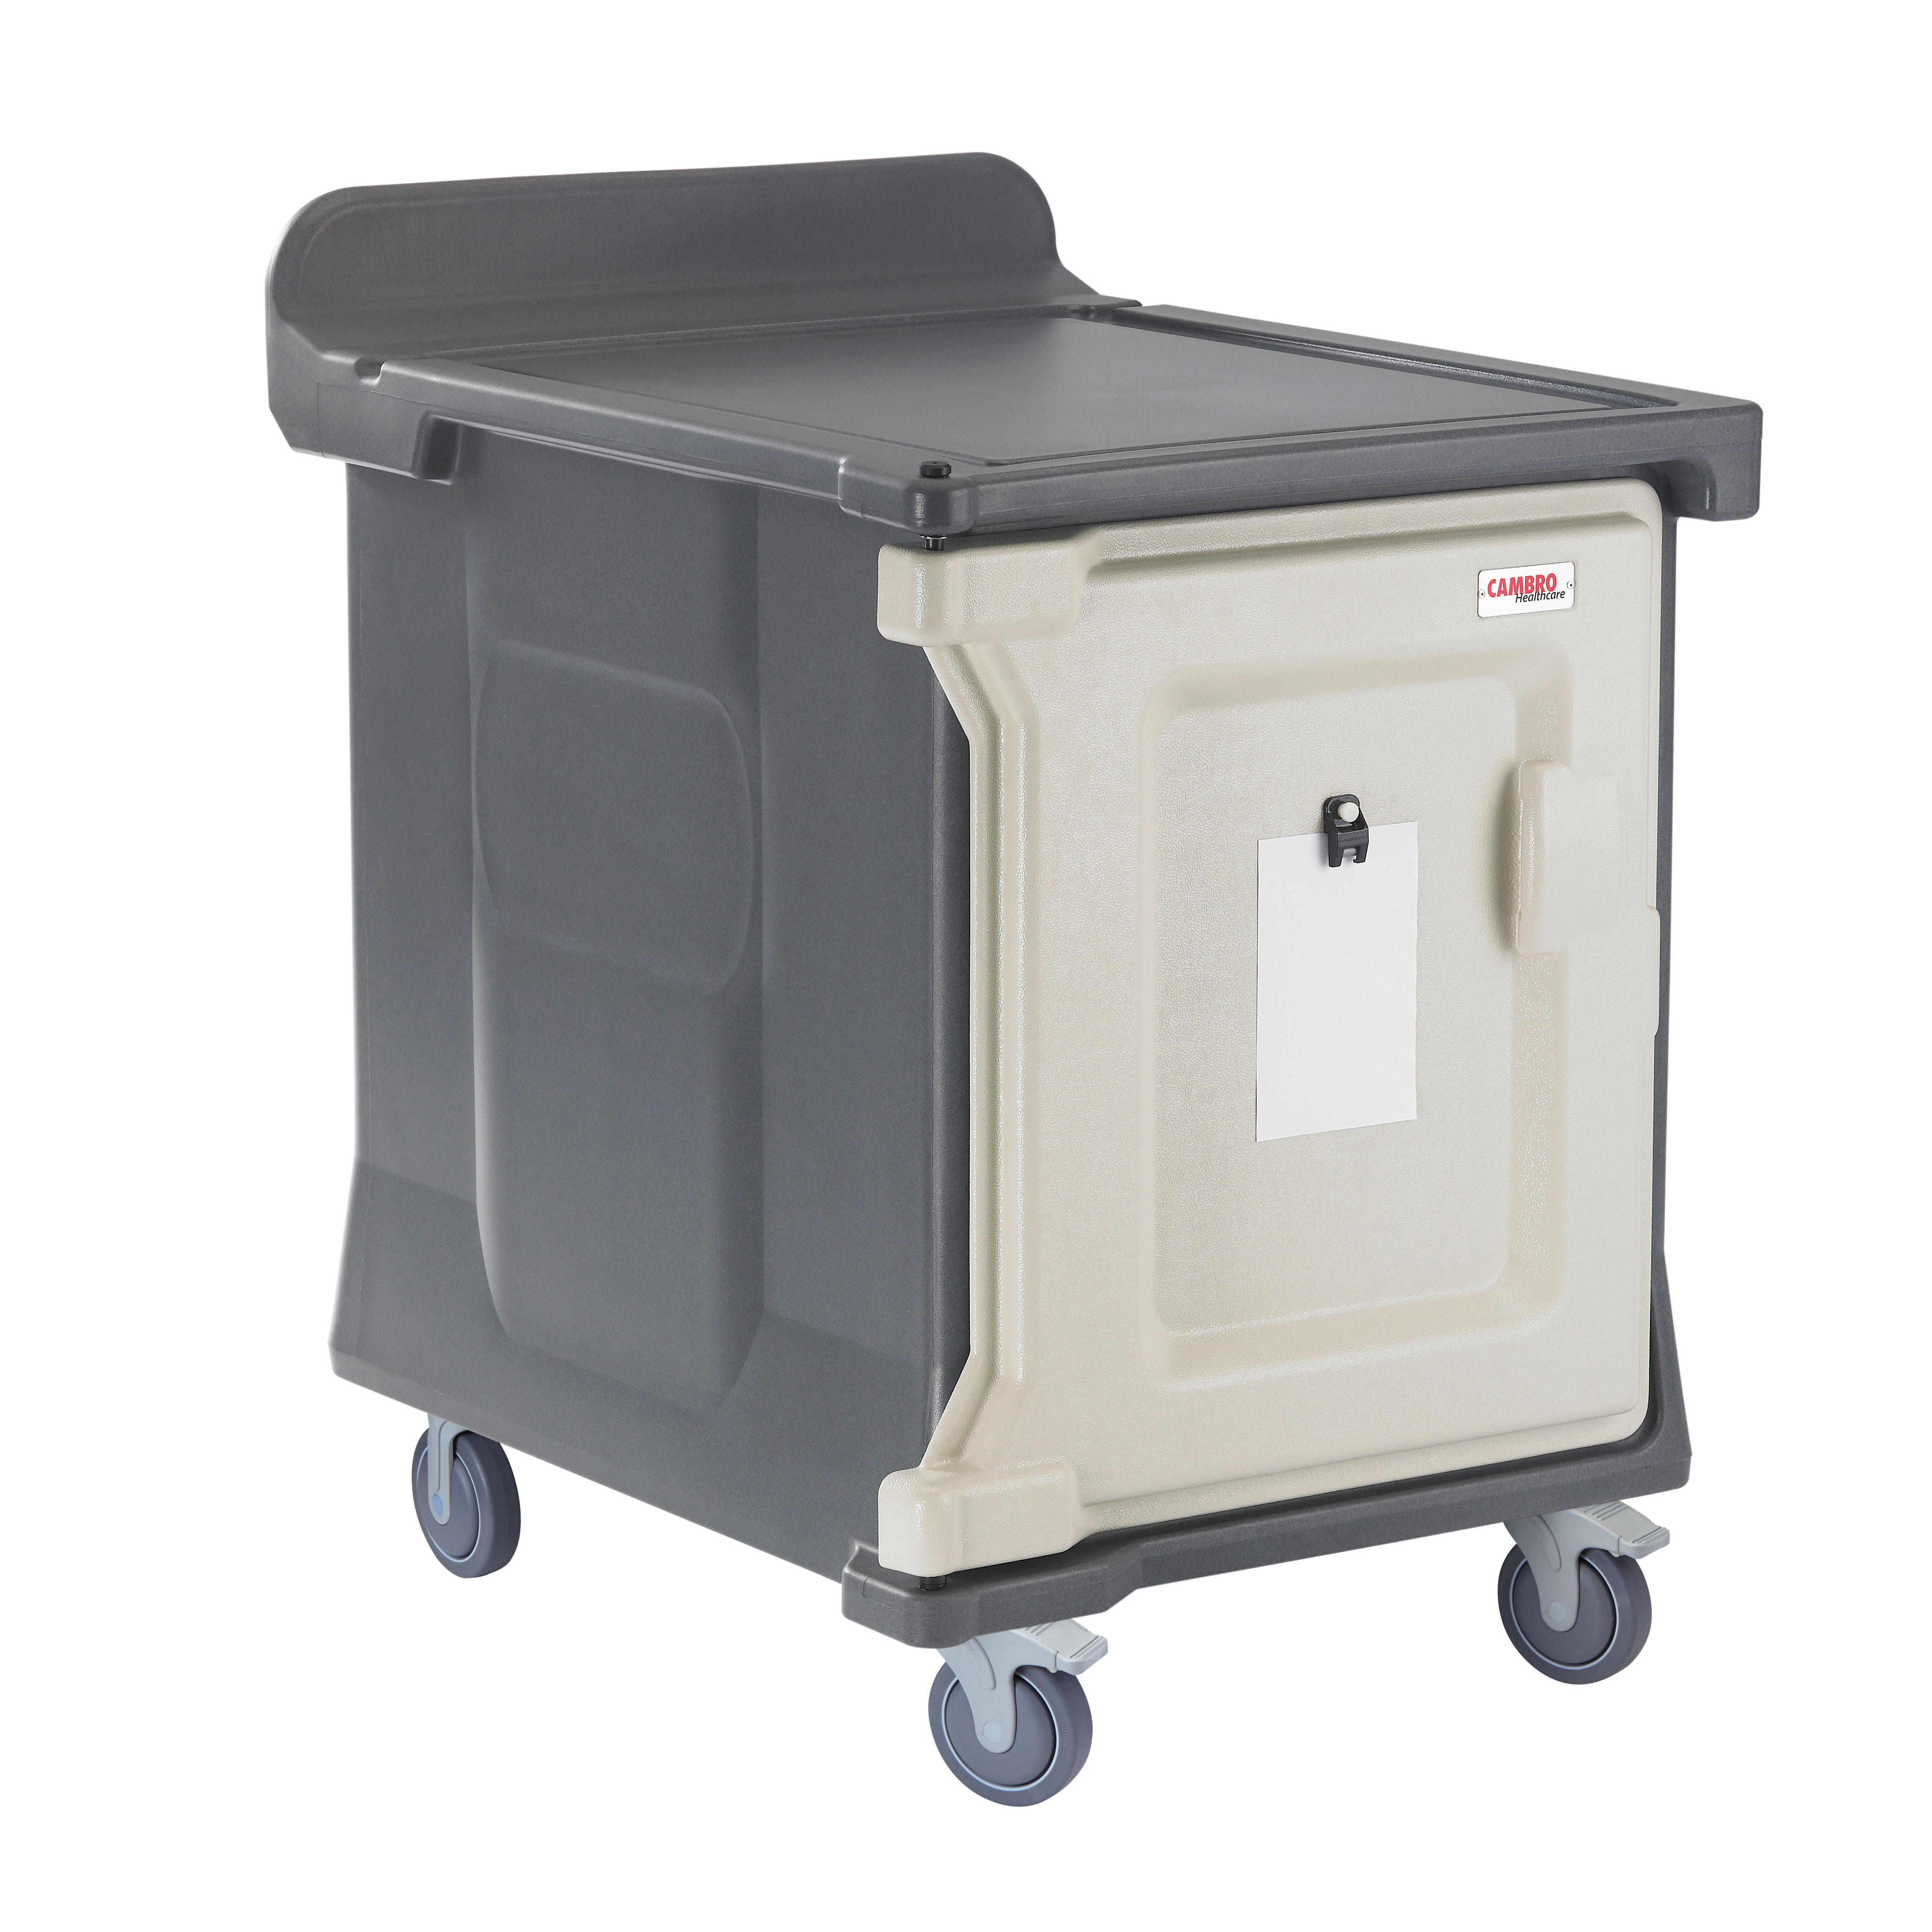 Cambro MDC1520S10DH191 cabinet, meal tray delivery